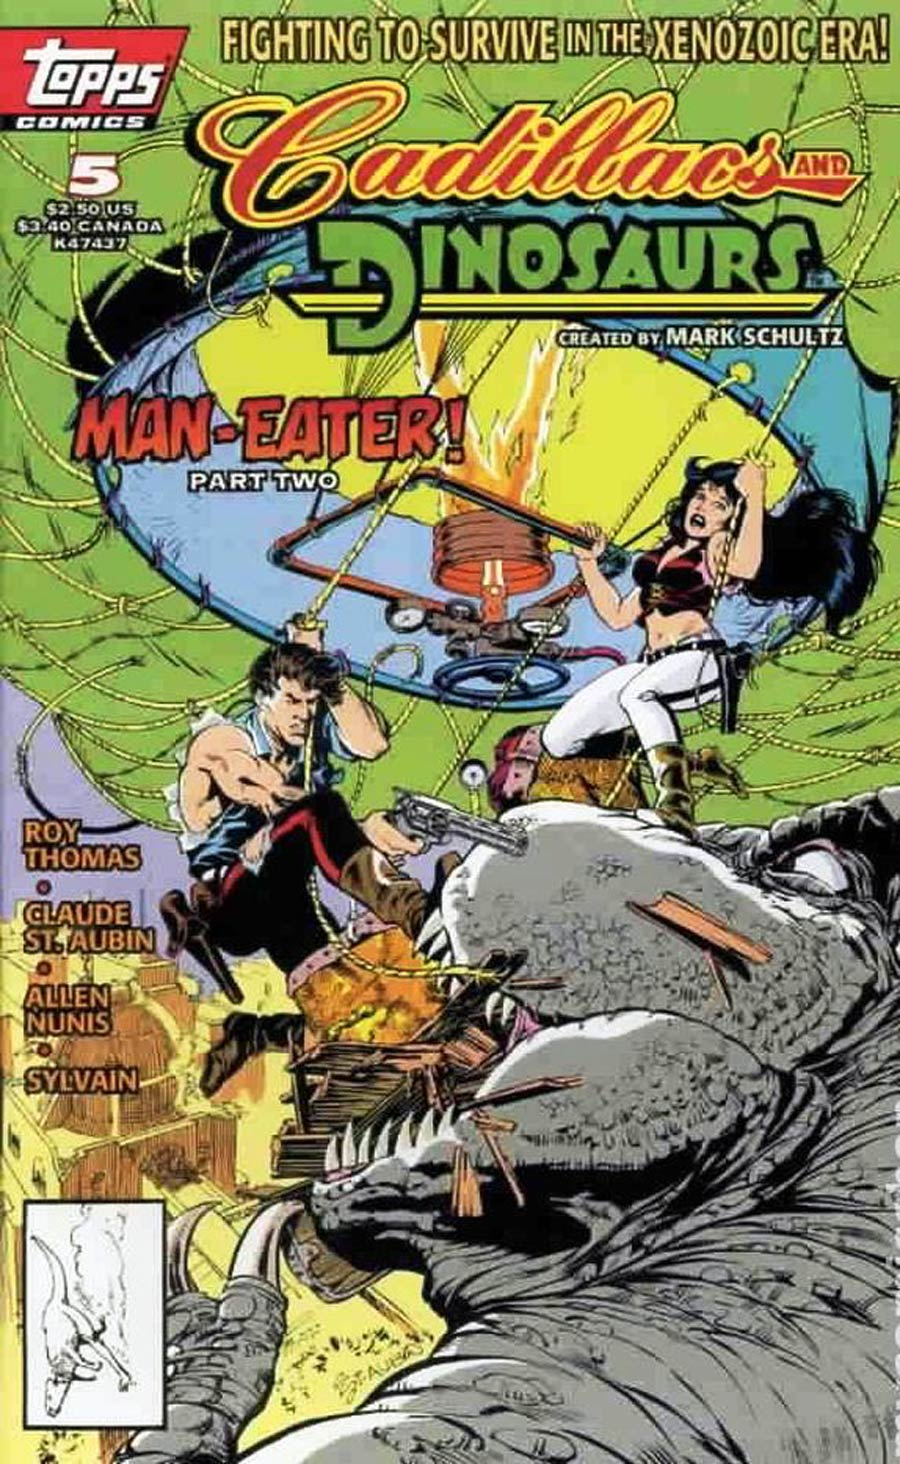 Cadillacs And Dinosaurs Vol 2 #5 Newsstand Edition